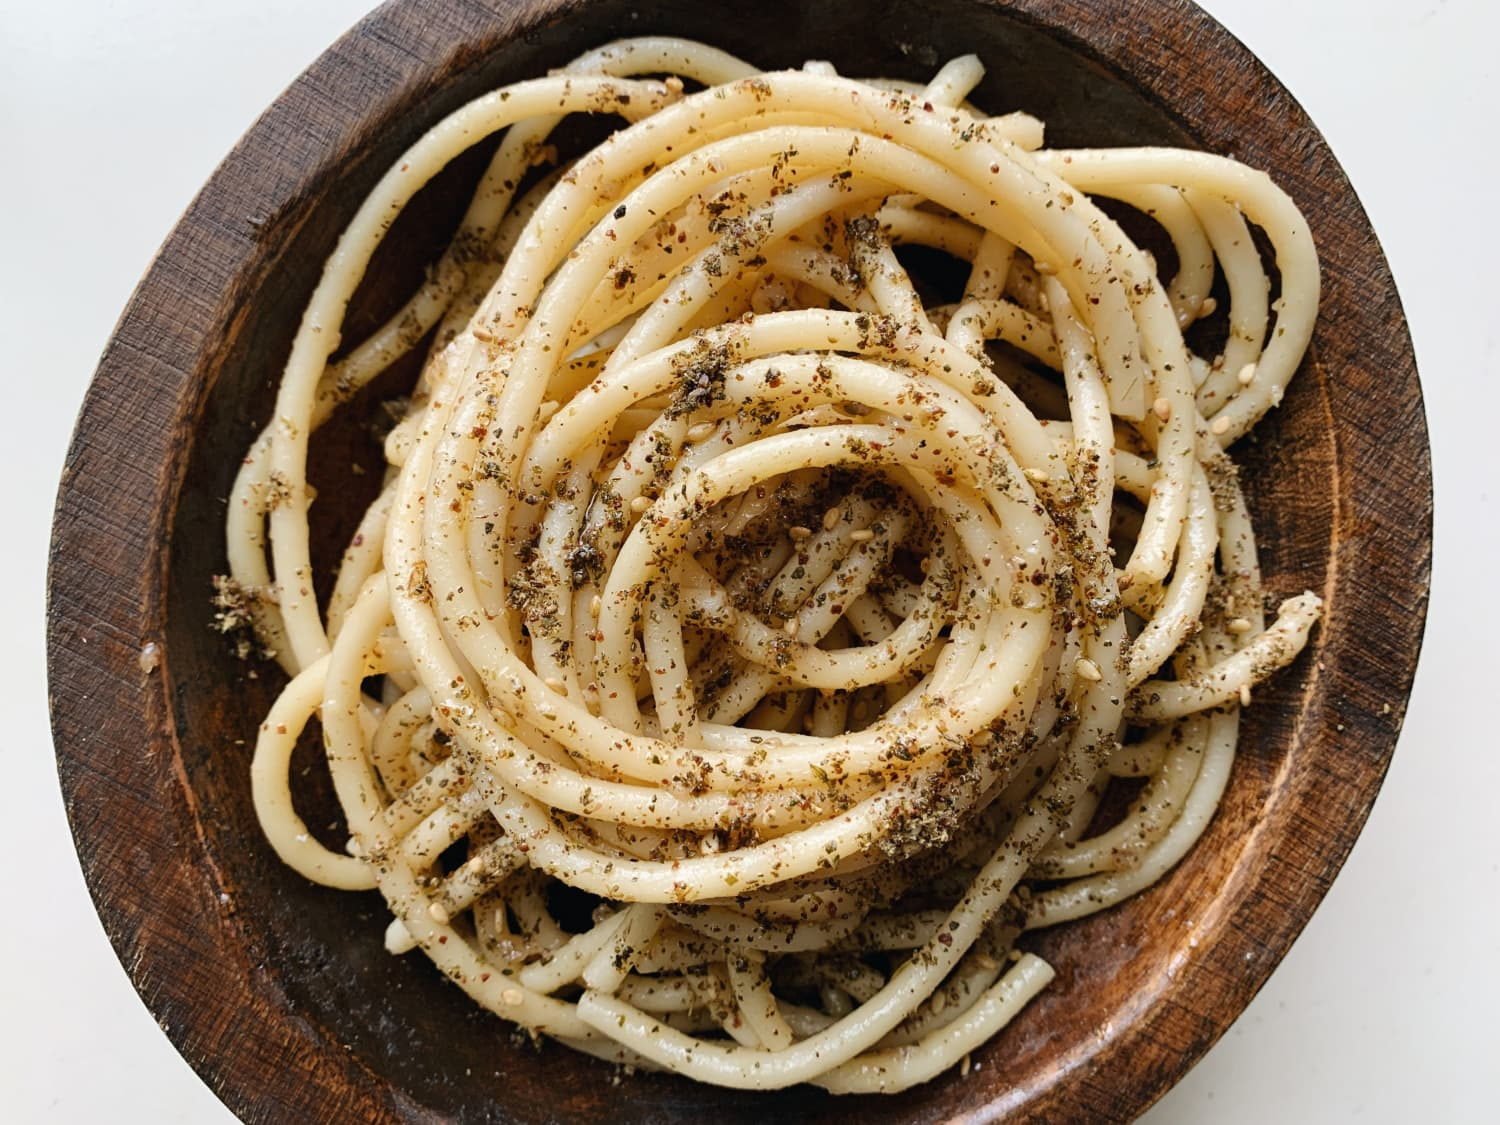 I Tried This Surprising Cacio e Pepe Upgrade and Couldn't Believe the Results